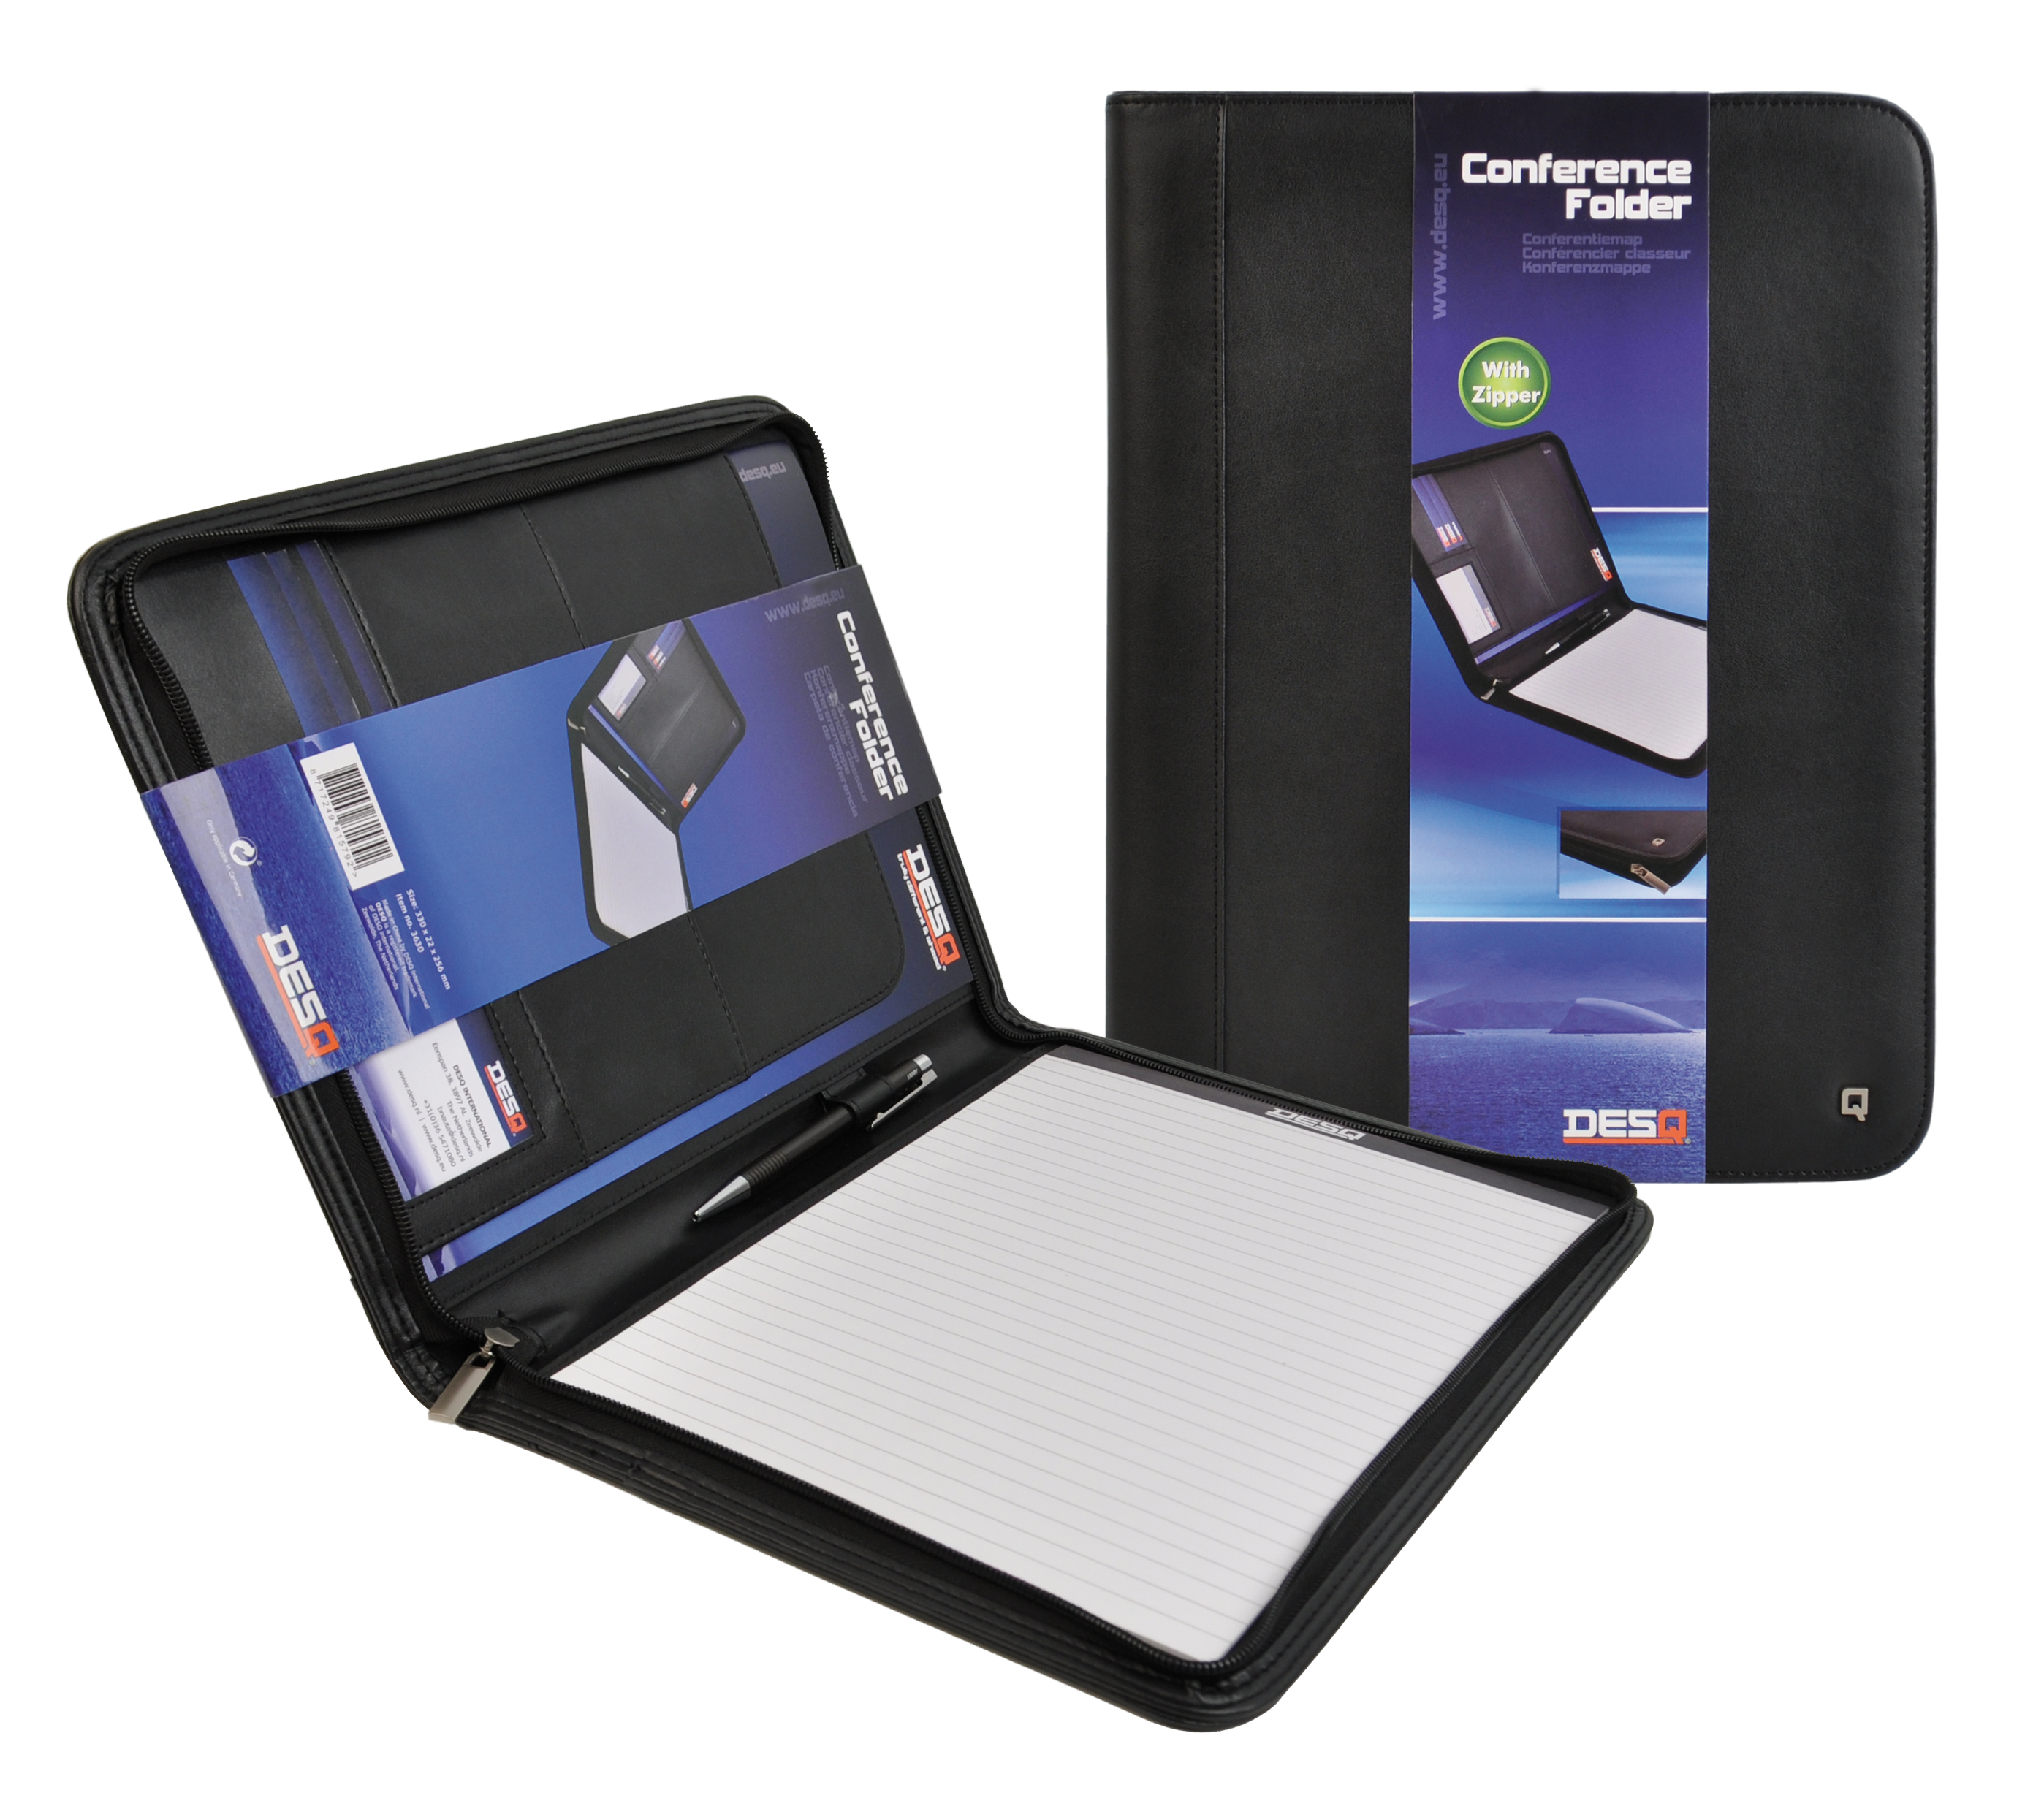 DesQ Zipper Conference Folder A4 with Notepad Image